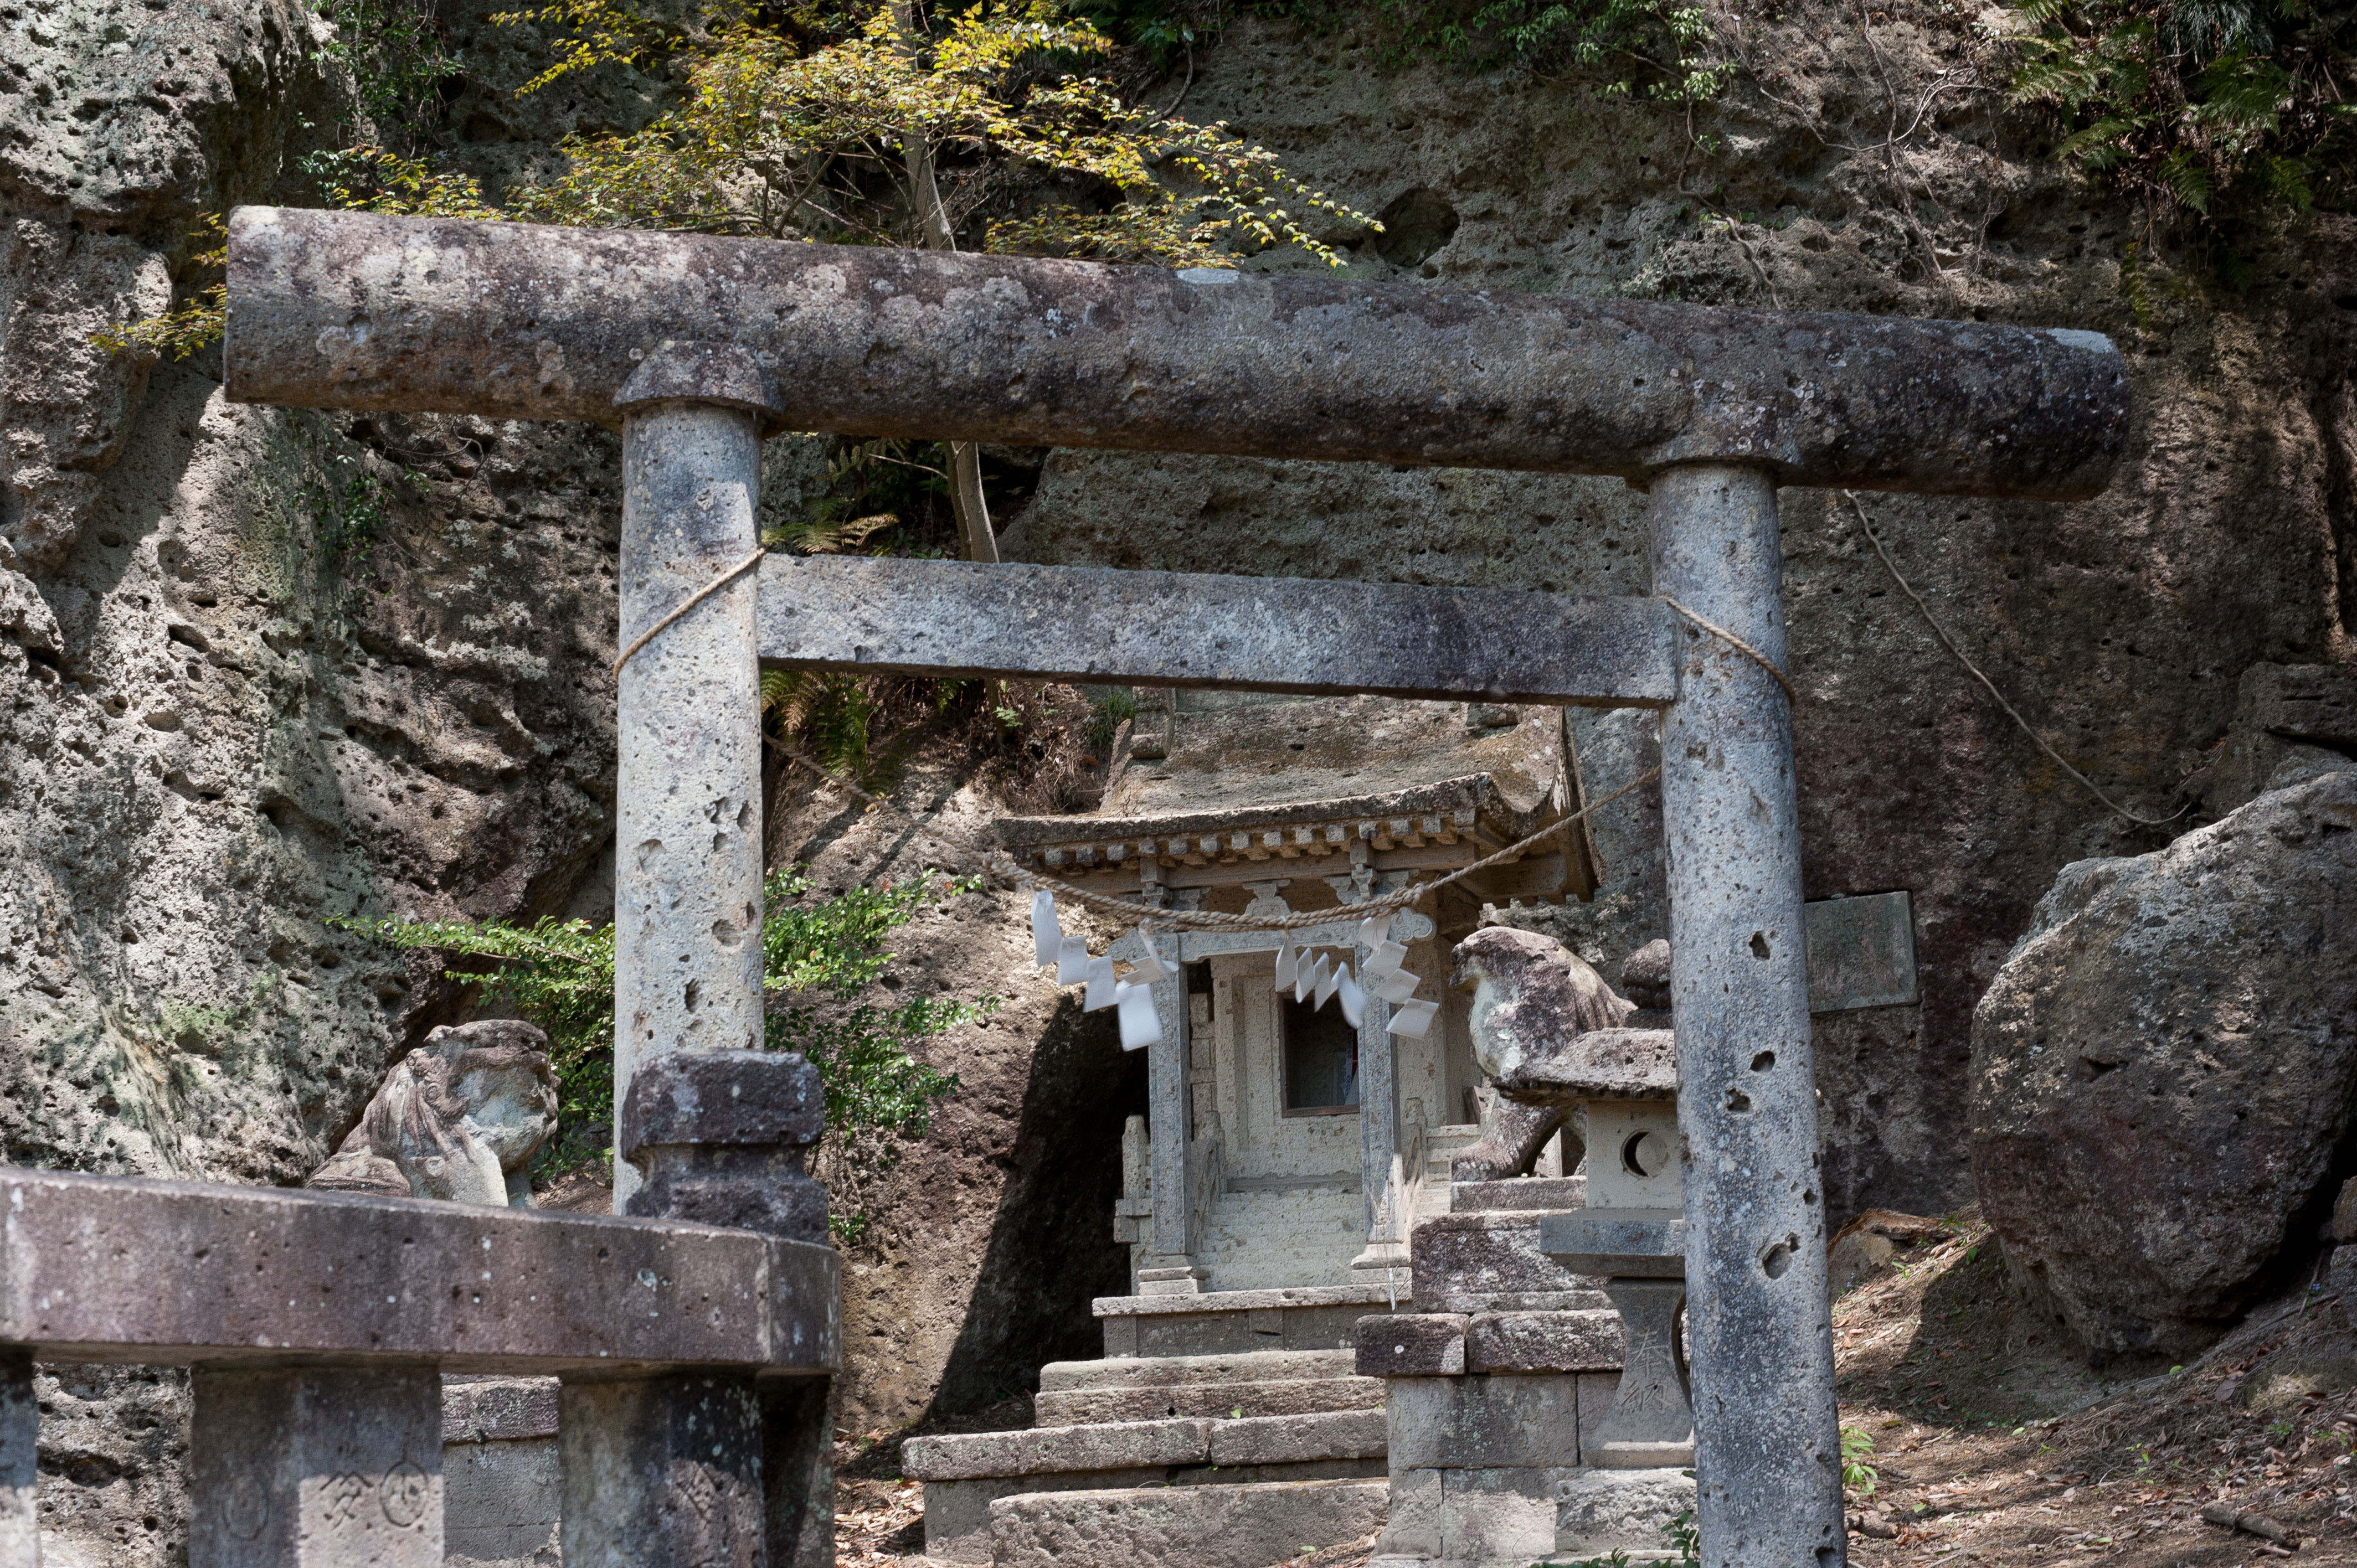 Every detail of this shrine, including the rock face it is built into, is made of Oya stone. | STEPHEN MANSFIELD